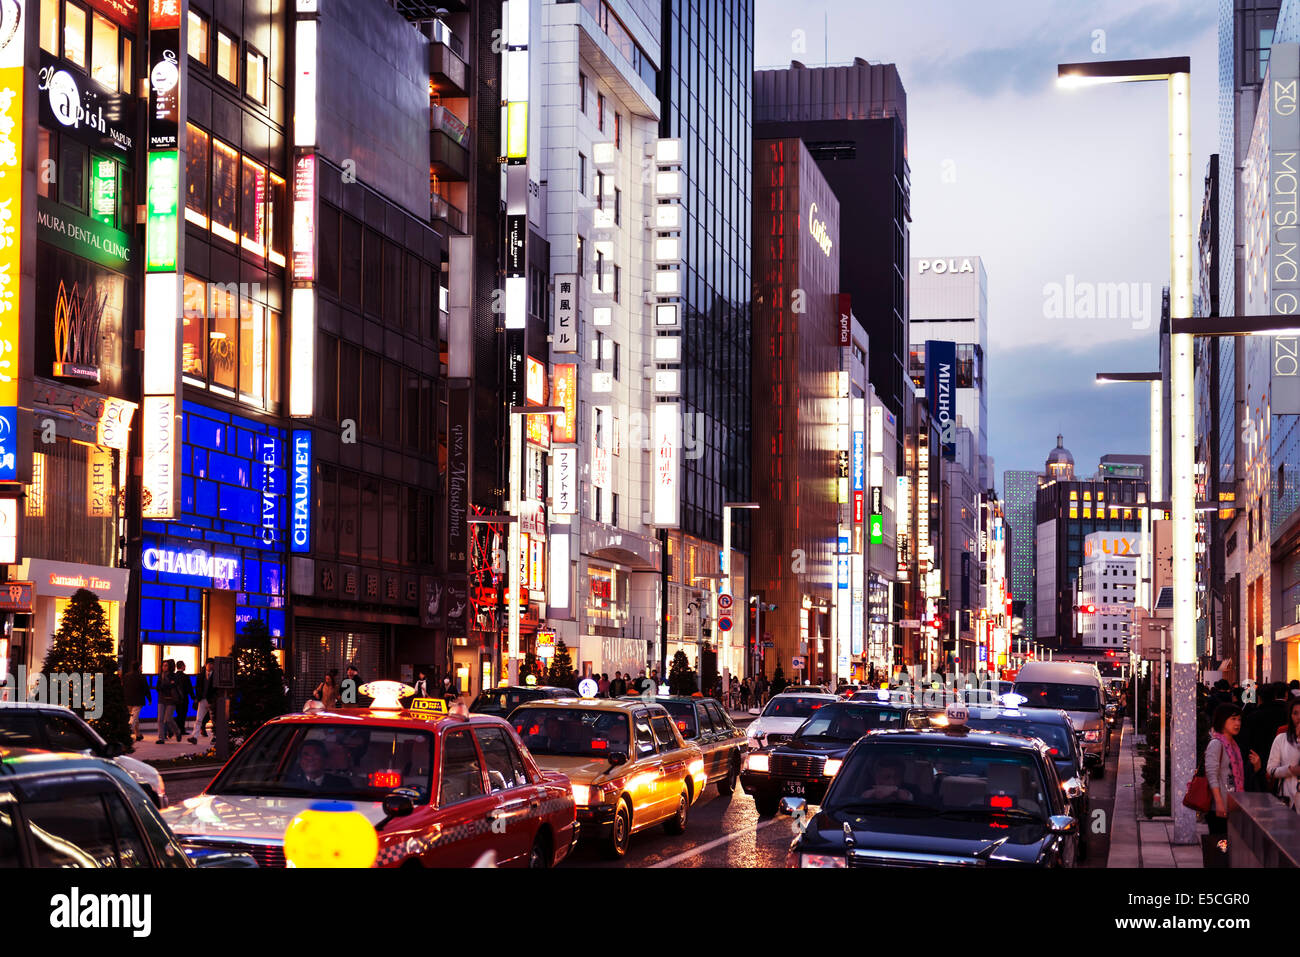 Tokyo city streets filled with taxi cabs at dusk. Ginza, Tokyo, Japan 2014 - Stock Image